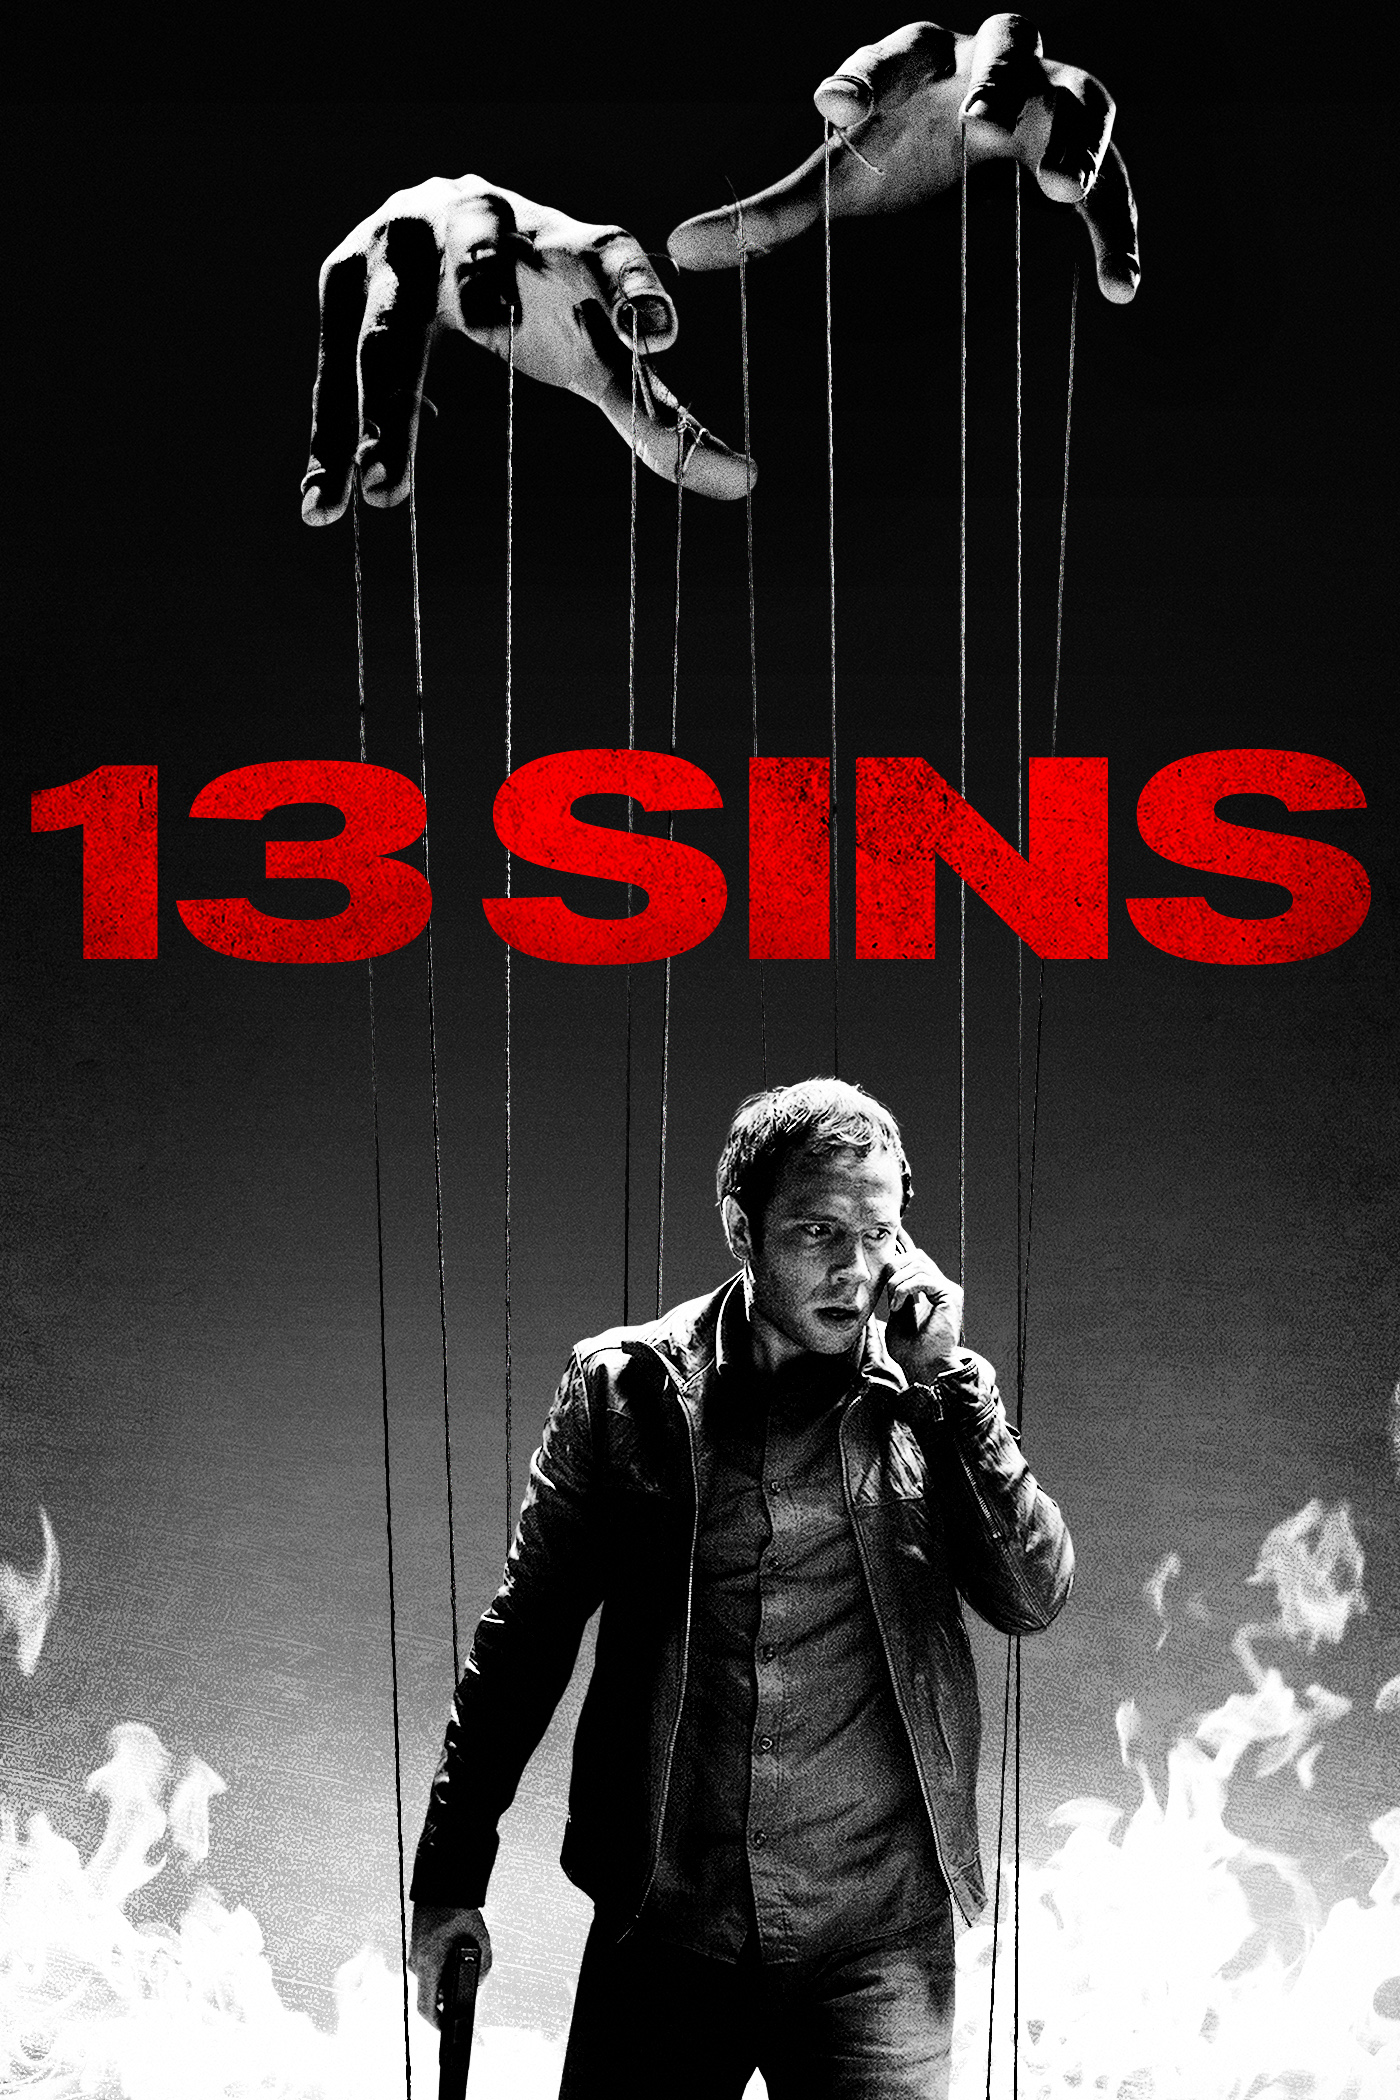 Amazing 13 Sins Pictures & Backgrounds